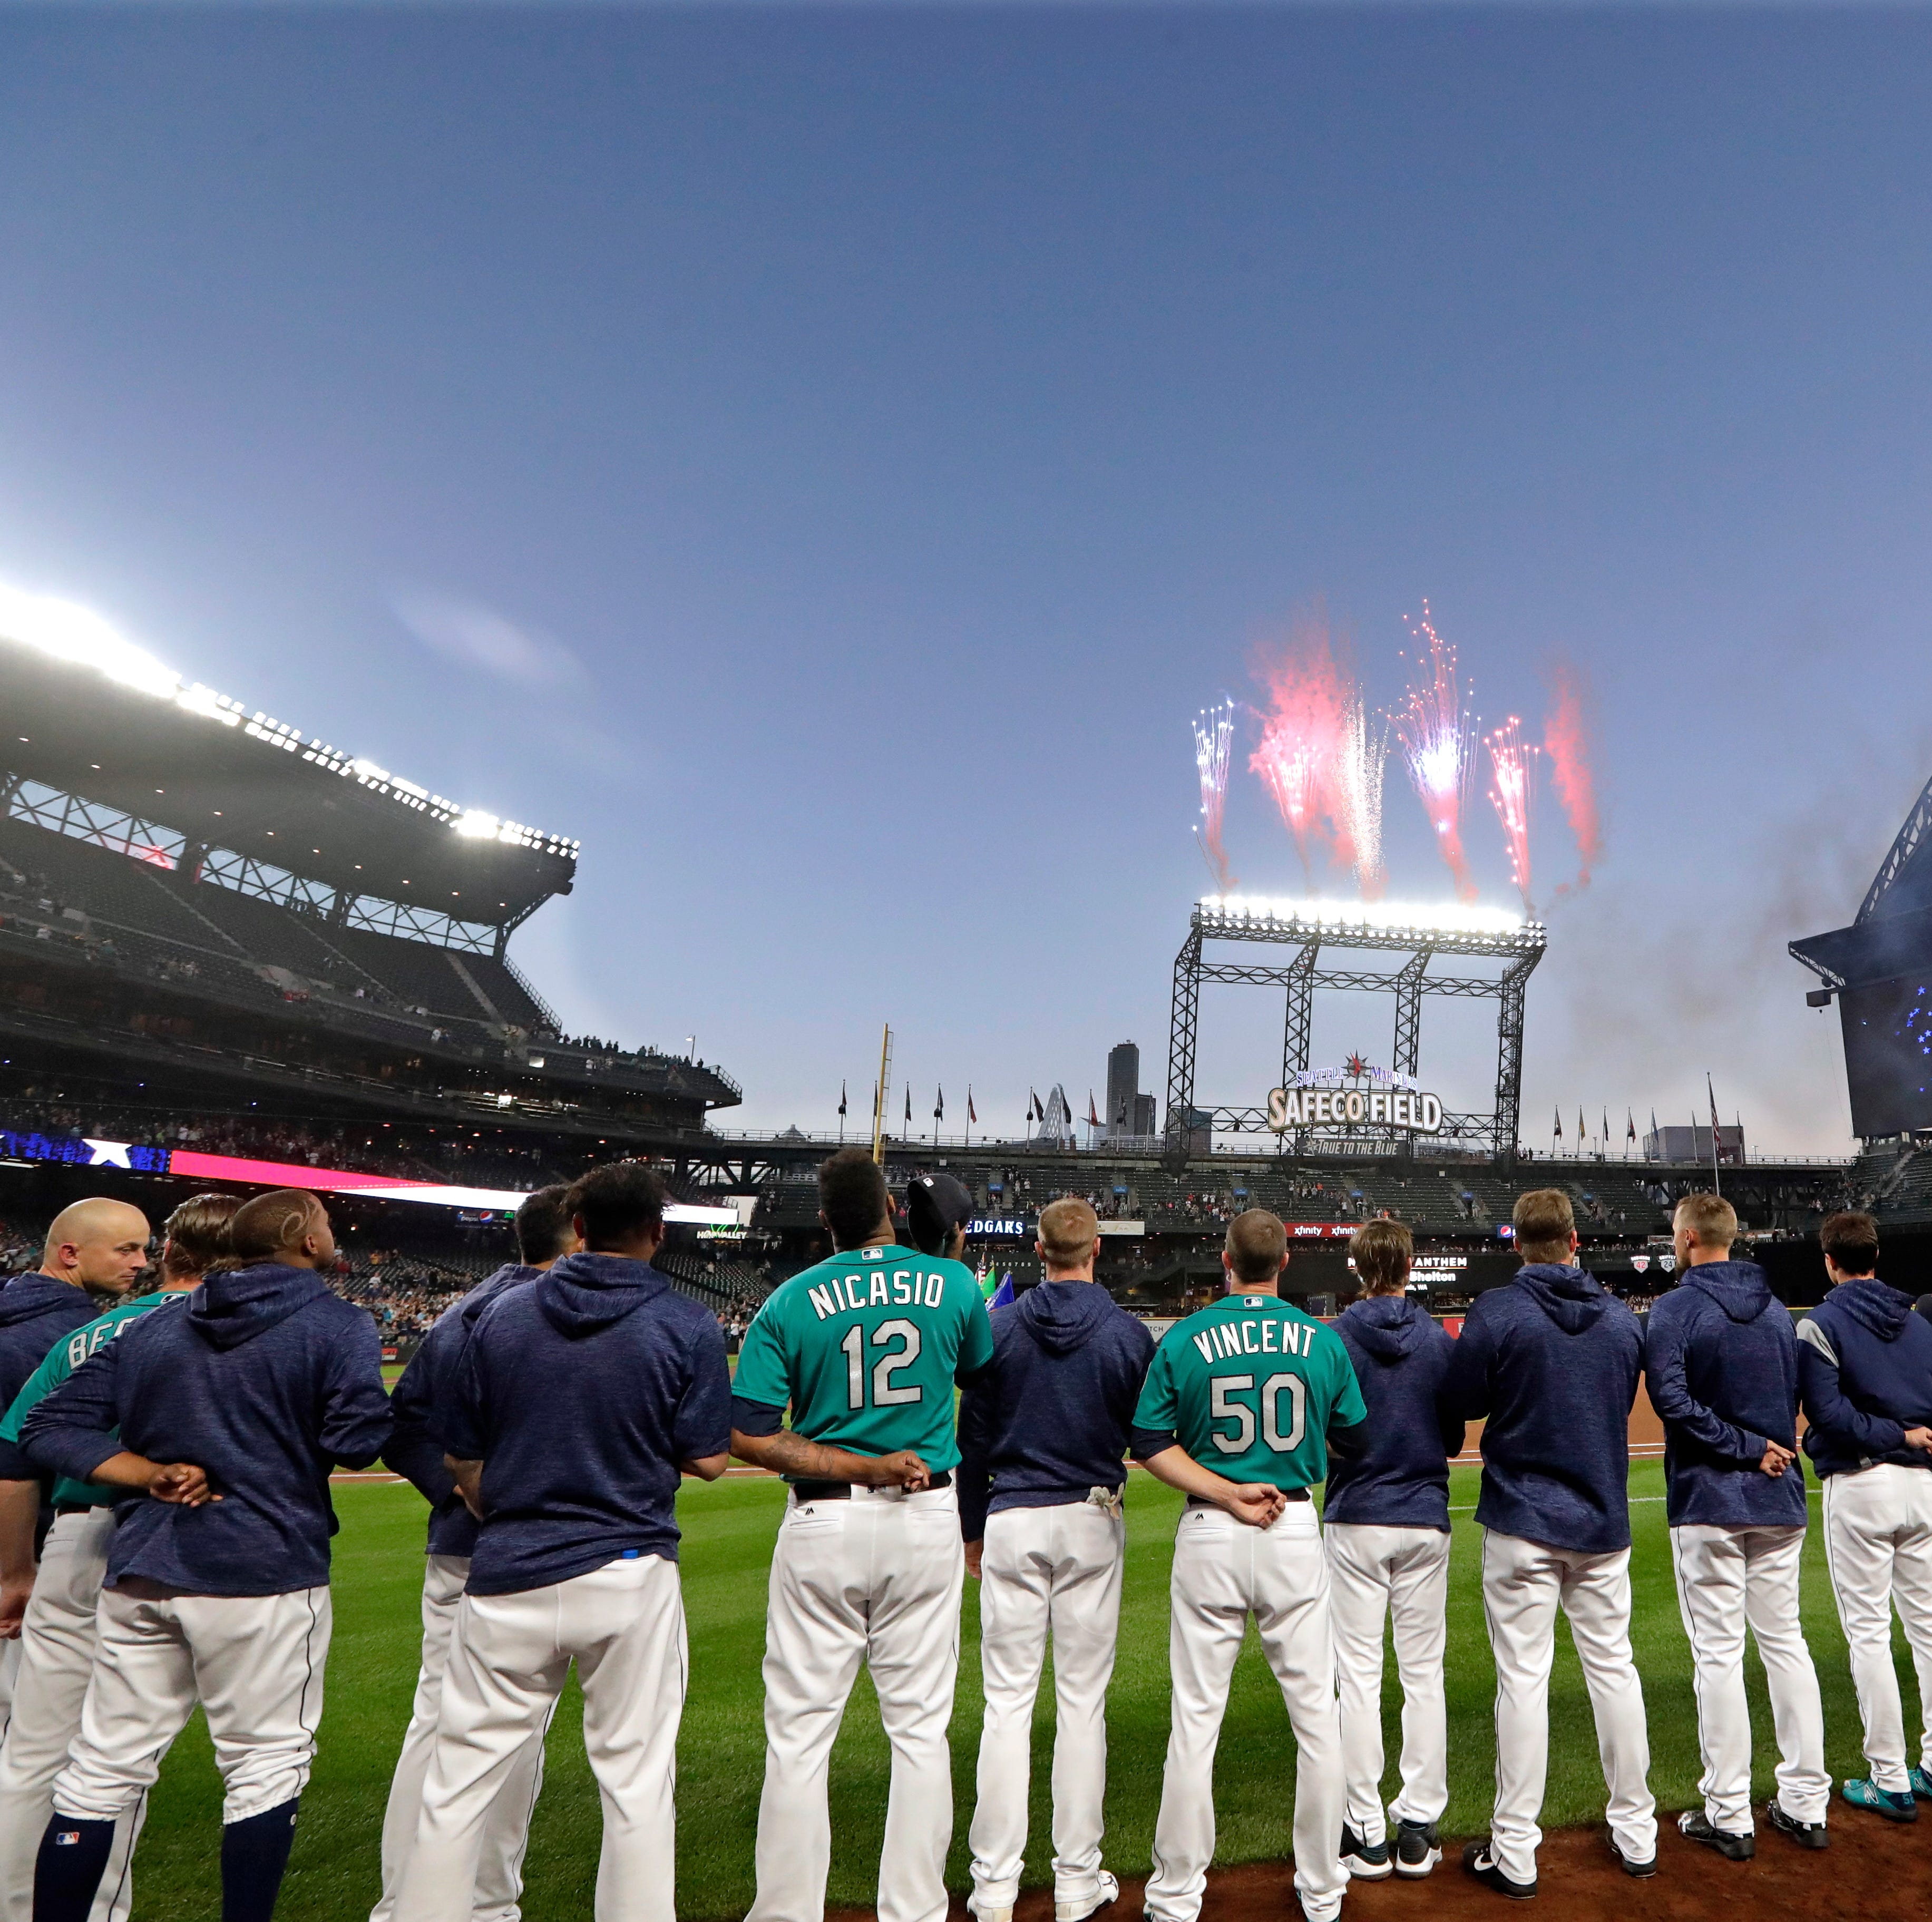 Mariners ponder the cause and effect of team chemistry after second-half slide